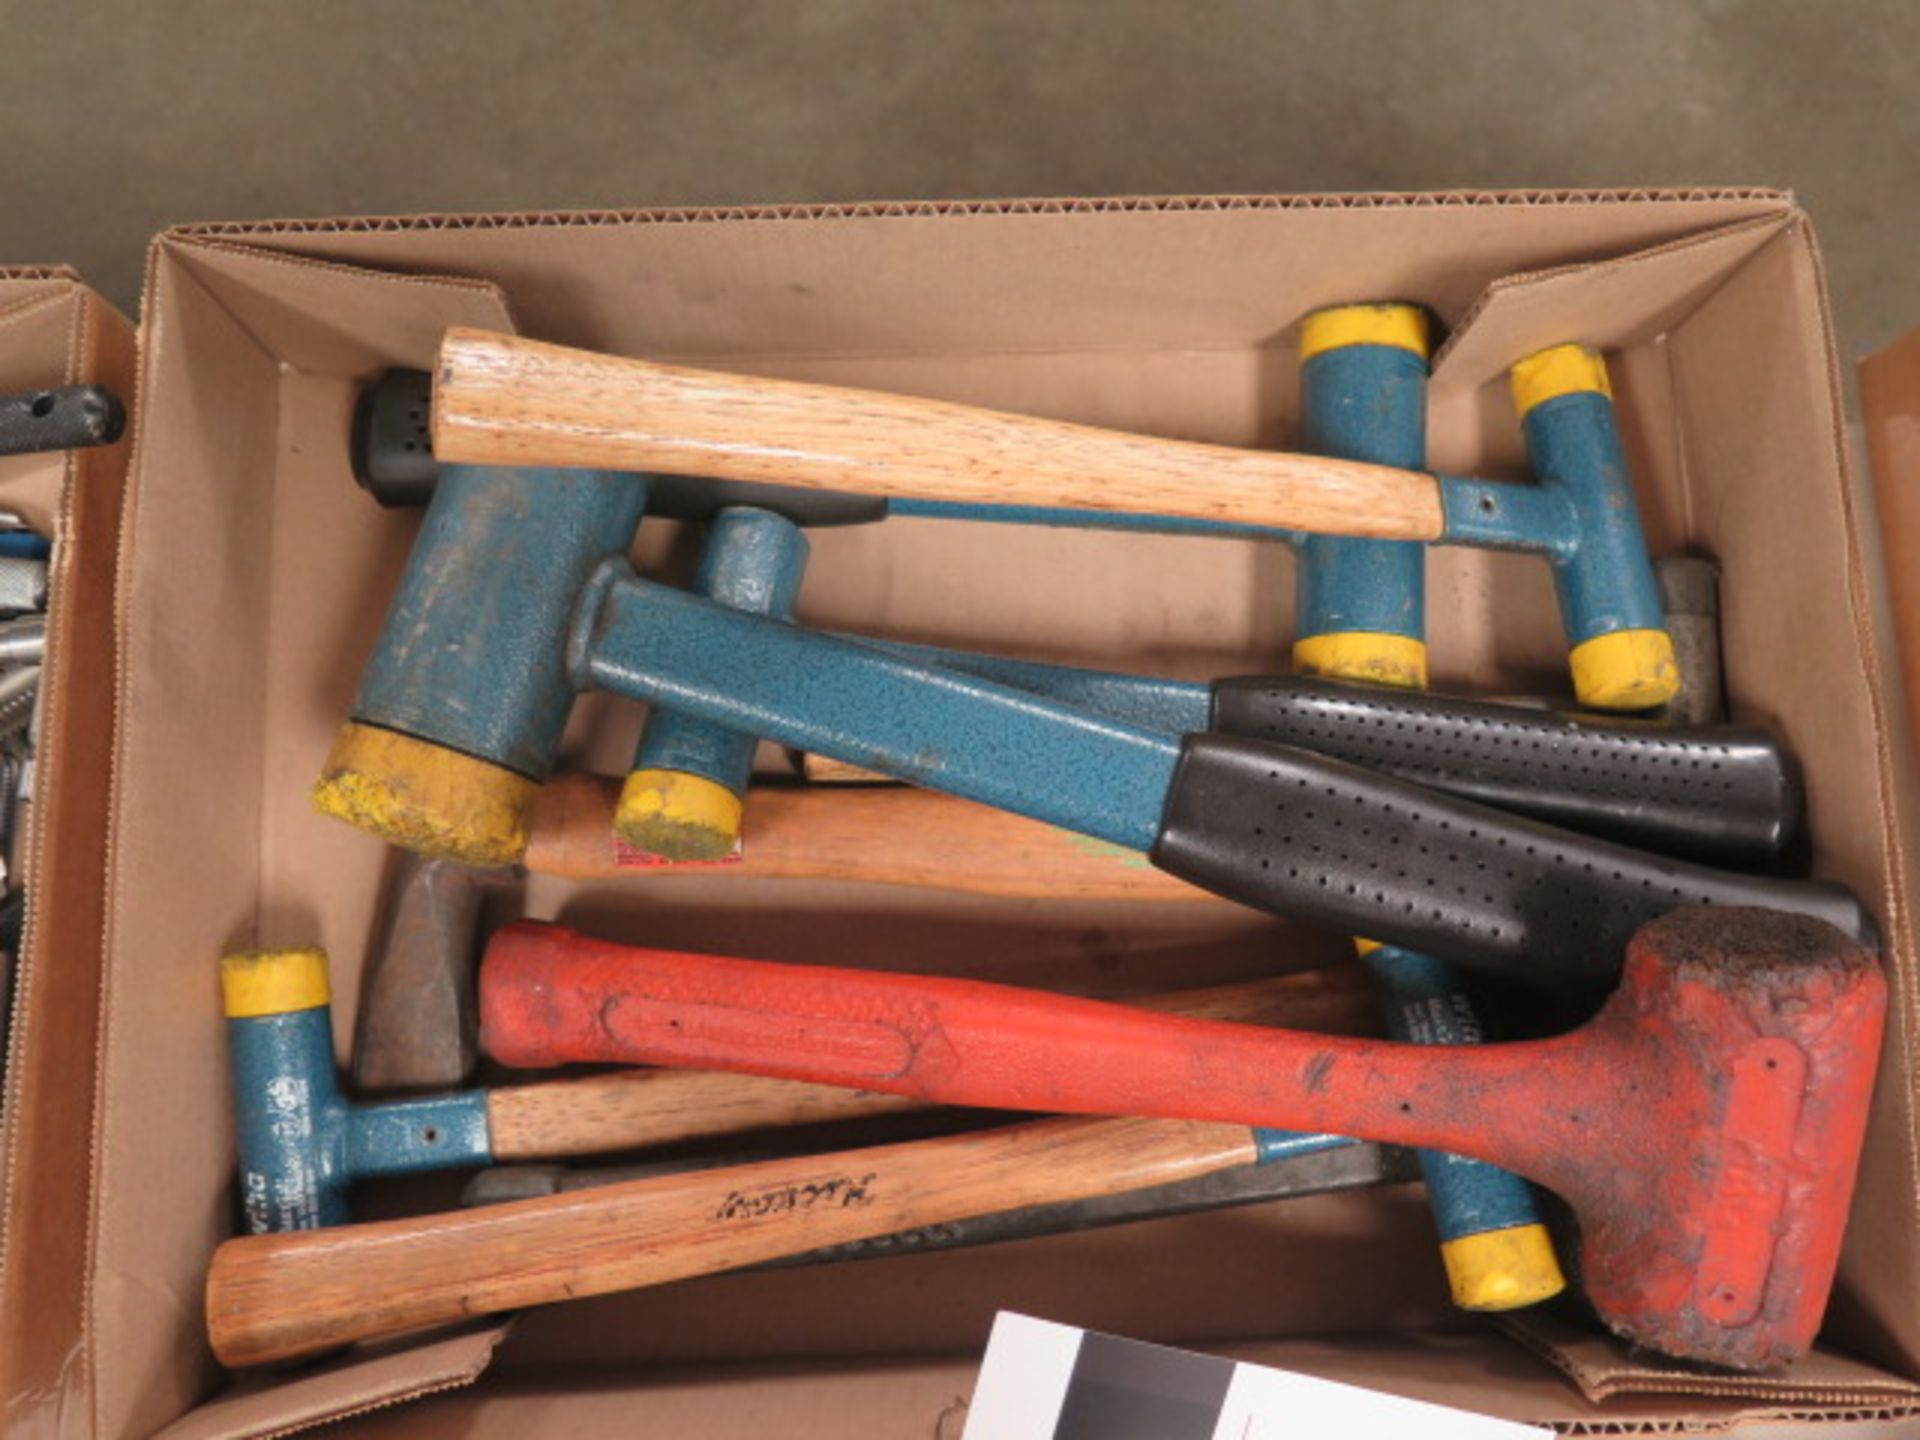 Dead Blow Hammers (SOLD AS-IS - NO WARRANTY) - Image 2 of 4